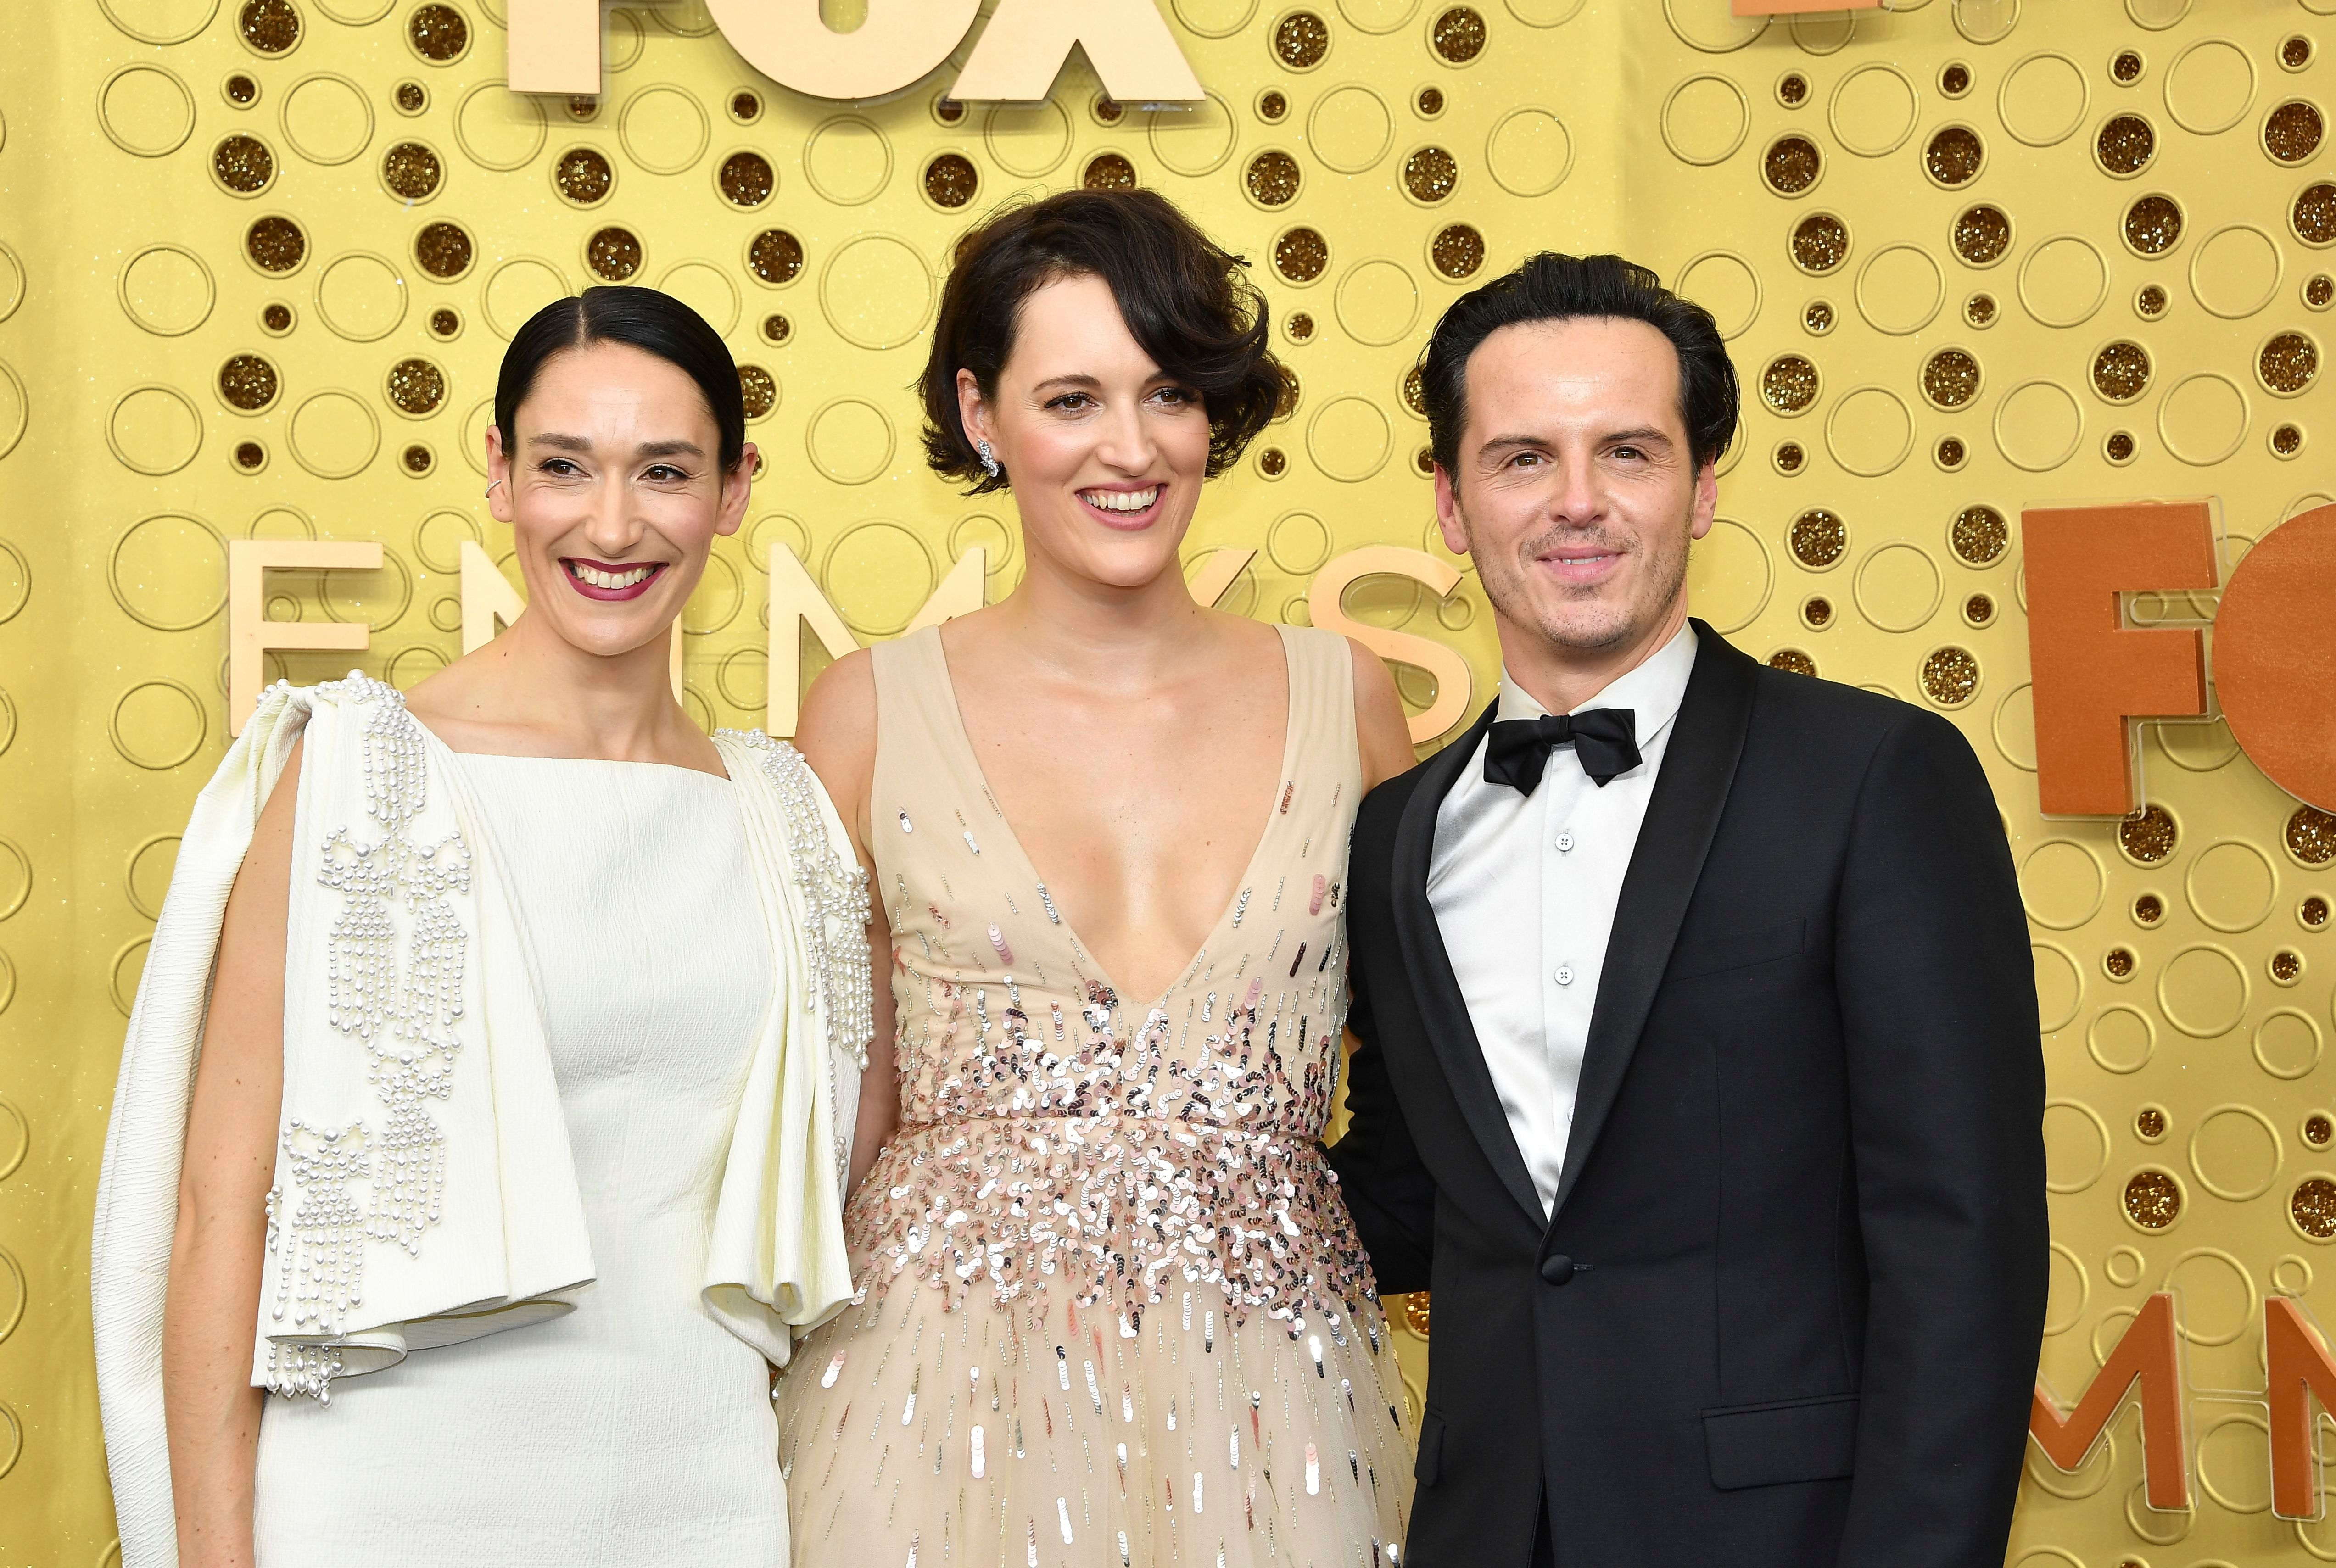 Andrew Scott, Phoebe Waller-Bridge, Sian Clifford. Sian Clifford, from left, Phoebe Waller-Bridge and Andrew Scott arrive at the 71st Primetime Emmy Awards, at the Microsoft Theater in Los Angeles71st Primetime Emmy Awards - Arrivals, Los Angeles, USA - 22 Sep 2019